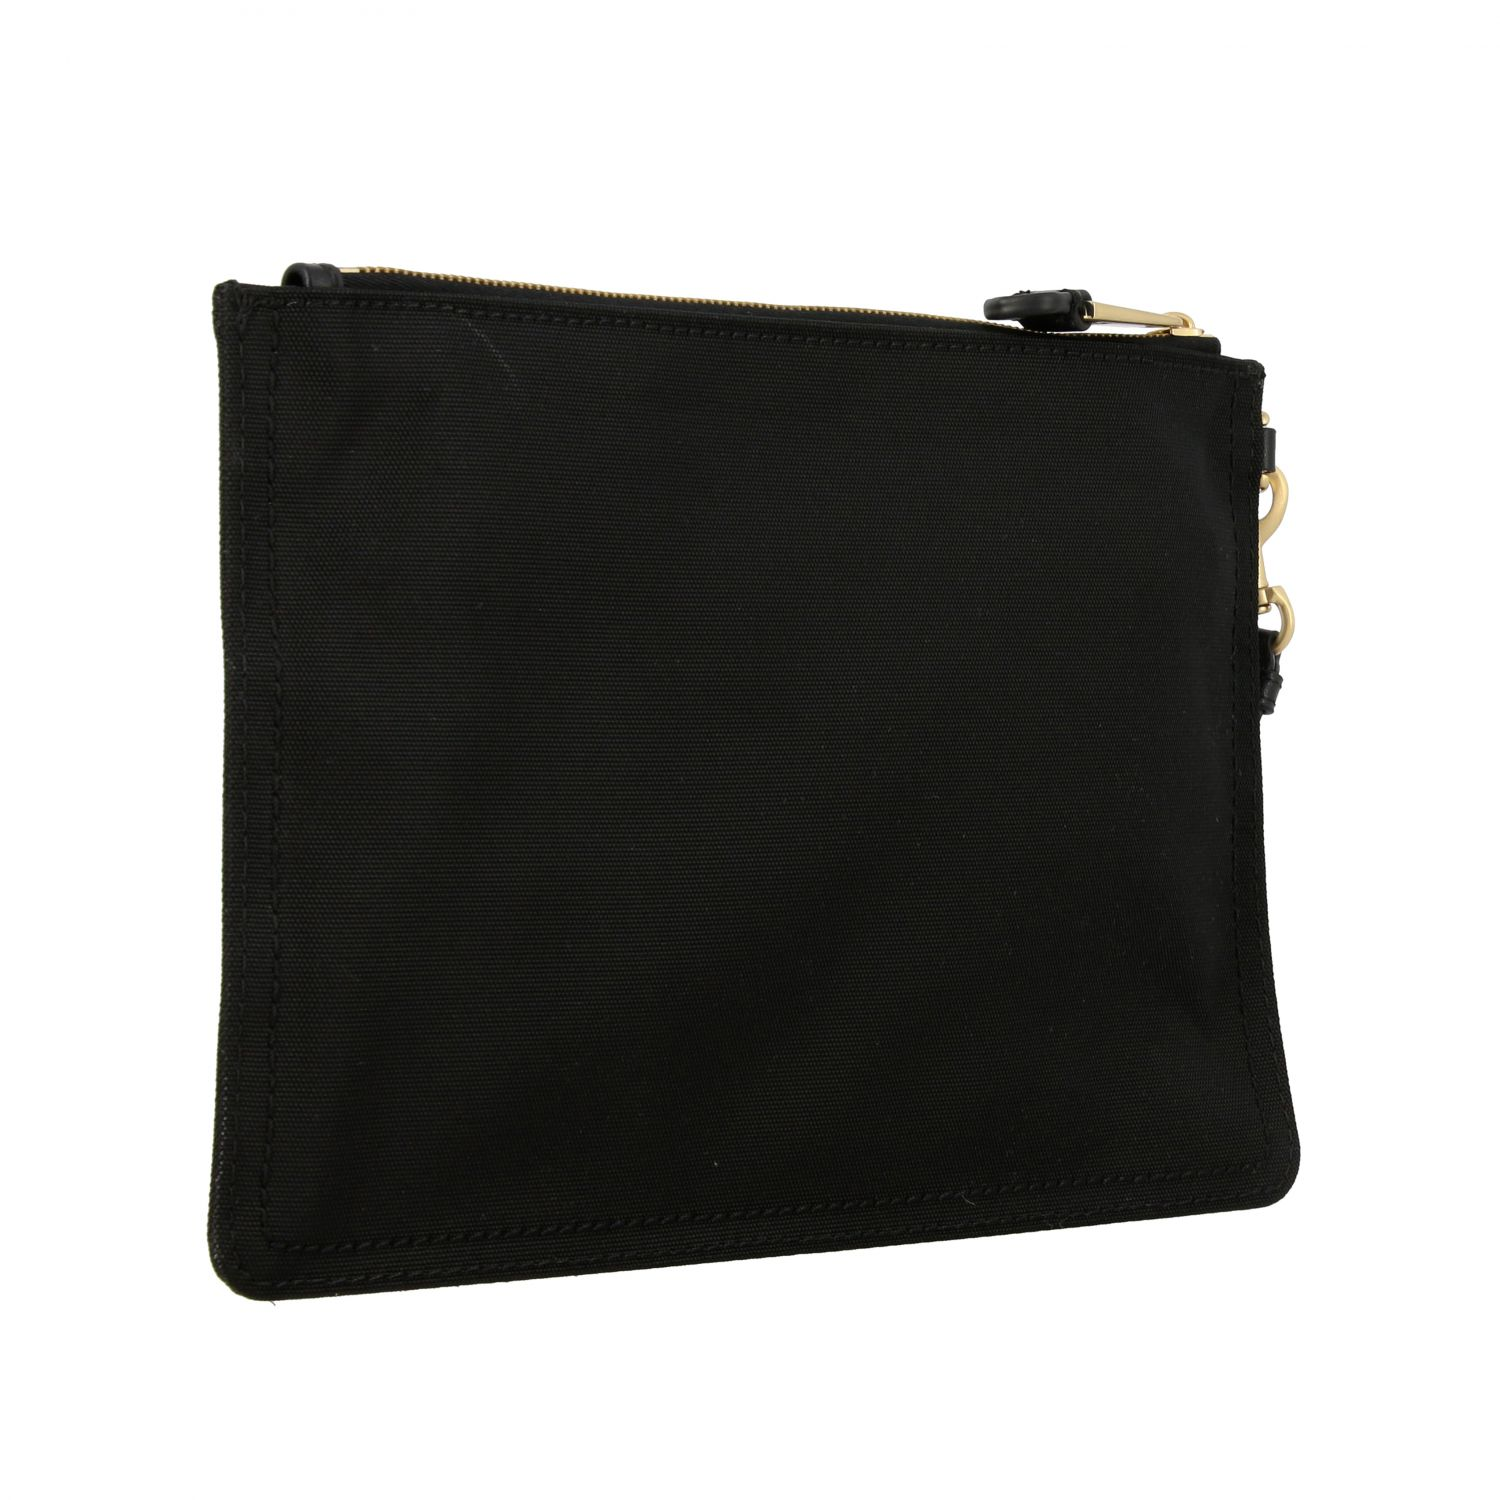 Moschino Couture canvas clutch with laminated logo black 3